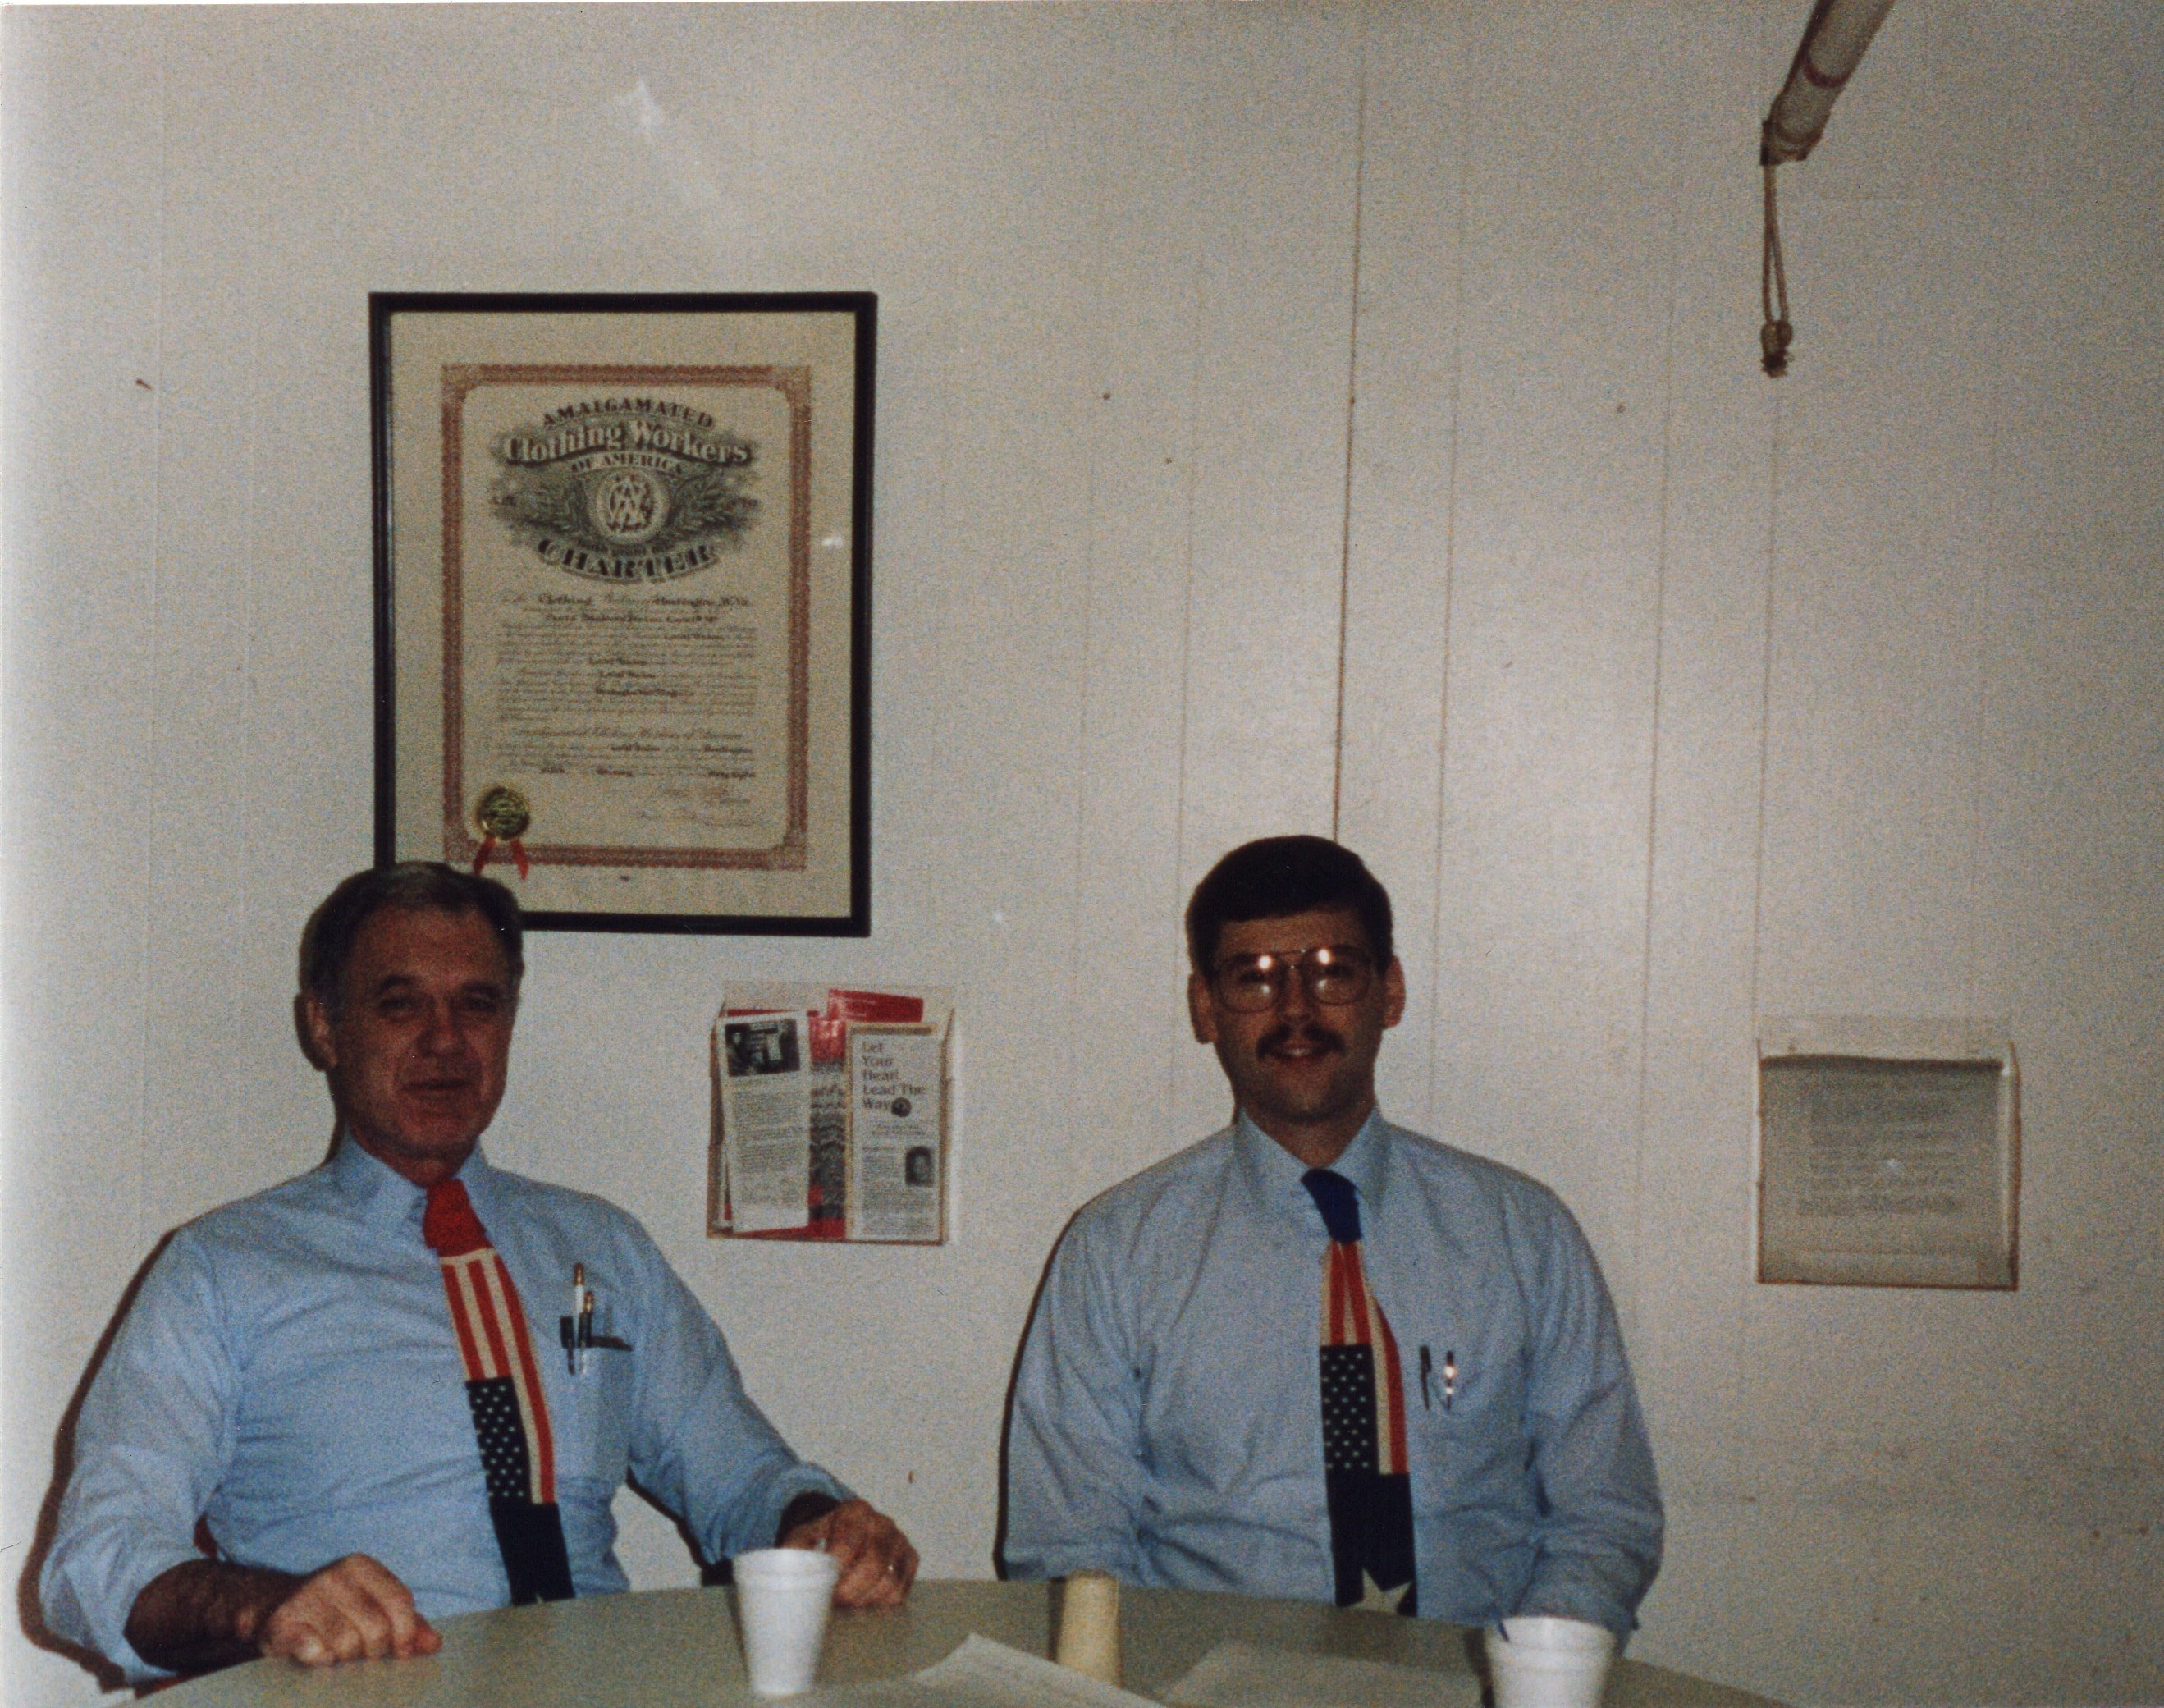 Corbin Ltd. Plant Manager Ken Felts and Engineer Tim Holton, 4th of July, Huntington, WV, 1990